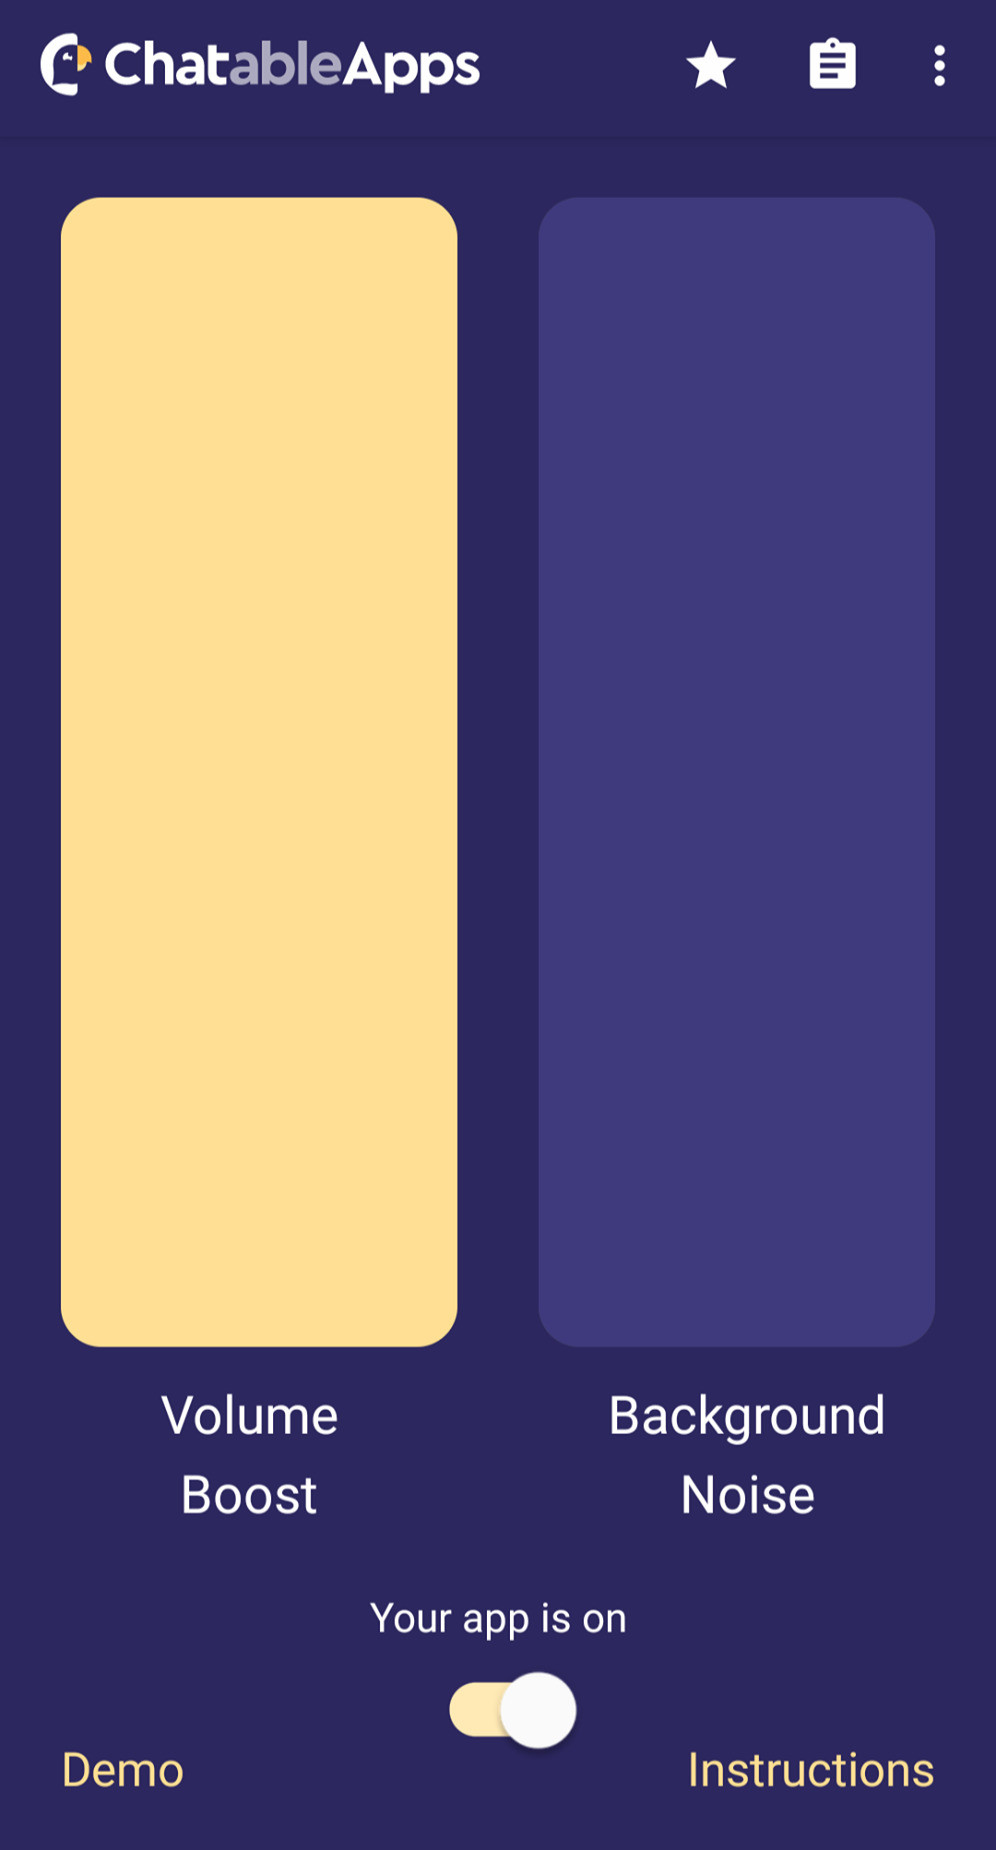 An image of the Chatable App. It has a purple background with two tall rectangular shapes, the left is a yellow/beige, the one on the right is a lighter shade of purple. Underneath the left shape is white writing that reads 'volume boost' and under the right image reads 'backfround noise'. There is switch to turn the app on and at the bottom left corner in yellow reads 'demo' and the bottom right reads 'instructions'